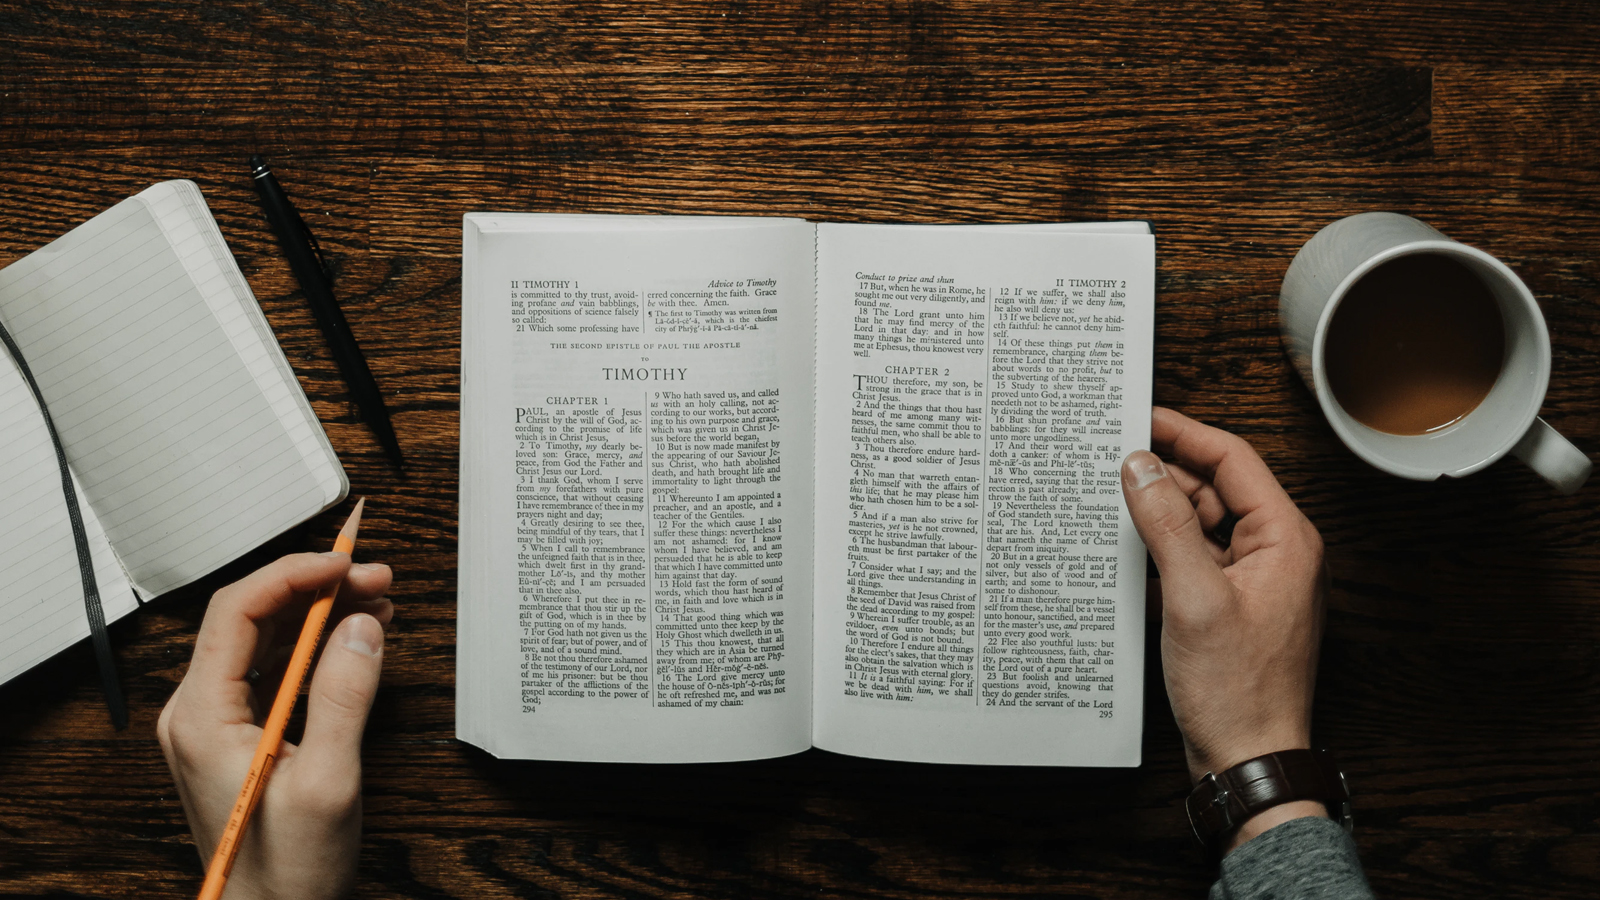 Can We Trust the Bible as a Source of Information